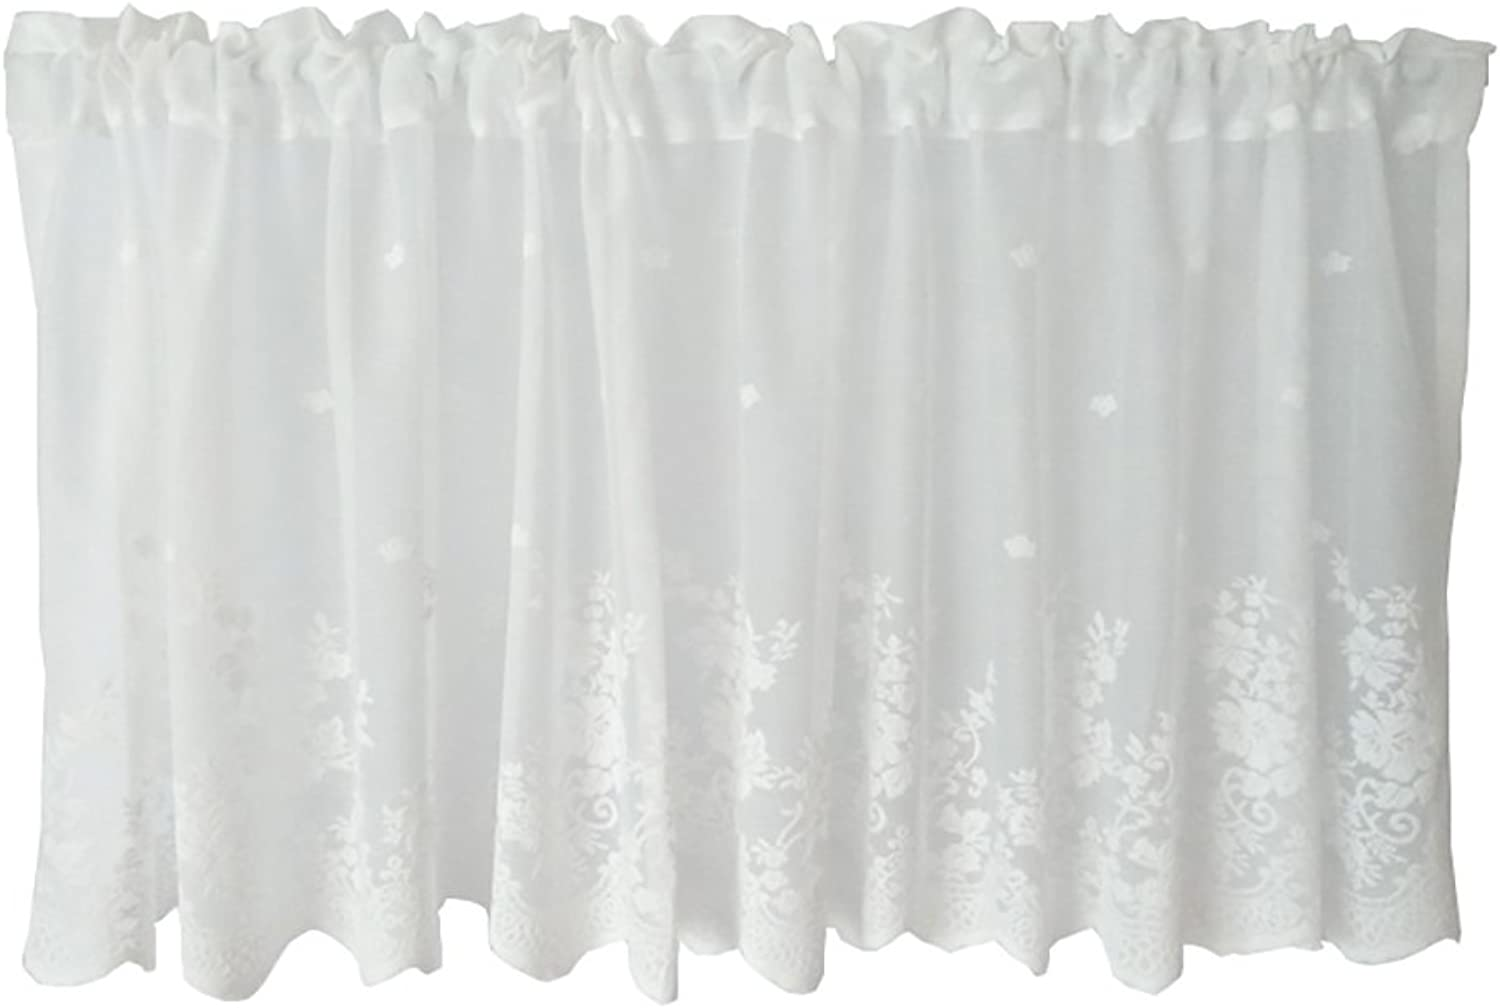 Roman Curtain Tulle White Yarn Embroidery Coffee Curtain Kitchen Short Curtain SemiShade Small Curtain For Home Decoration Rod Pocket,White,1Pc(100X40cm)